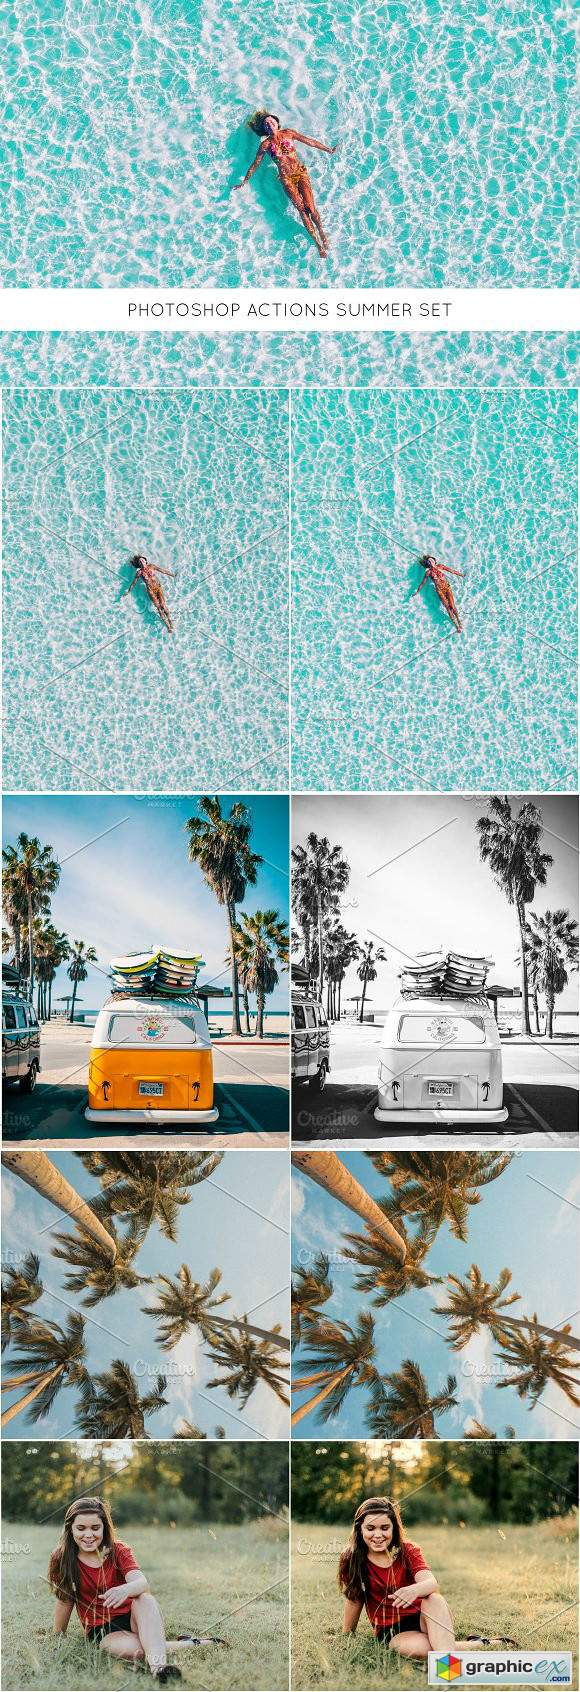 Photoshop actions Summer set